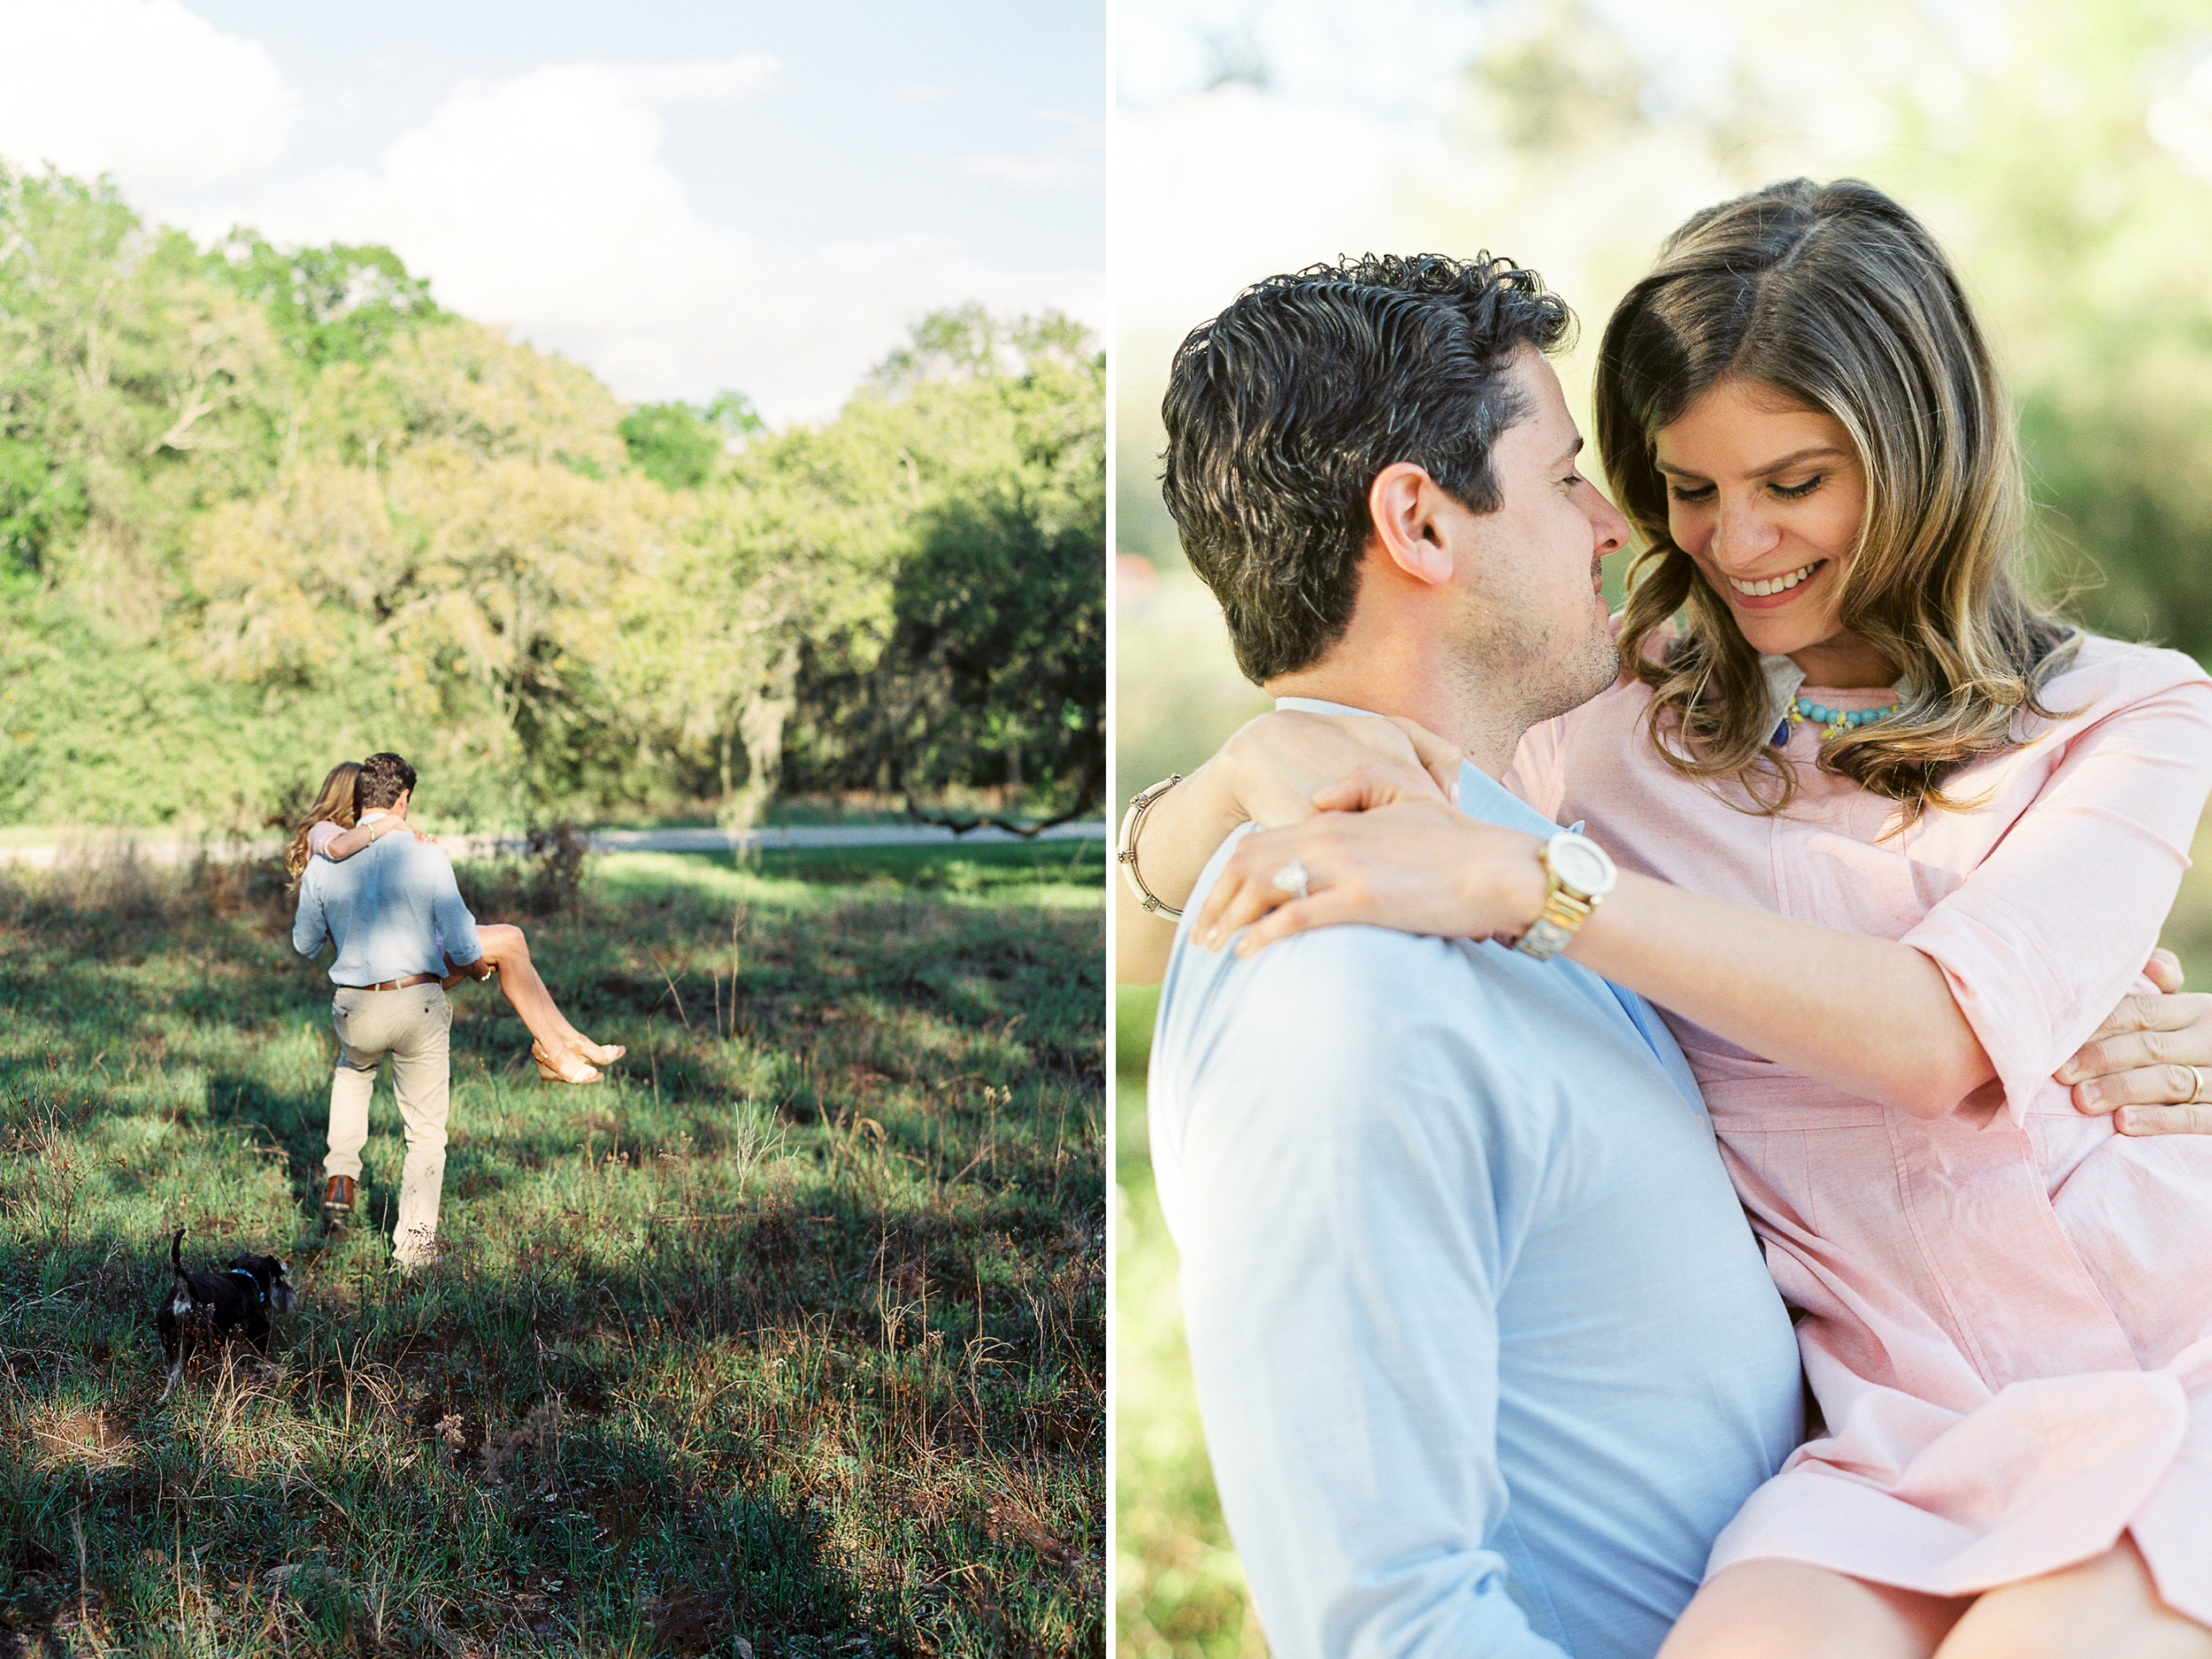 dana-fernandez-photography-houston-wedding-engagement-photographer-destination-film-10.jpg